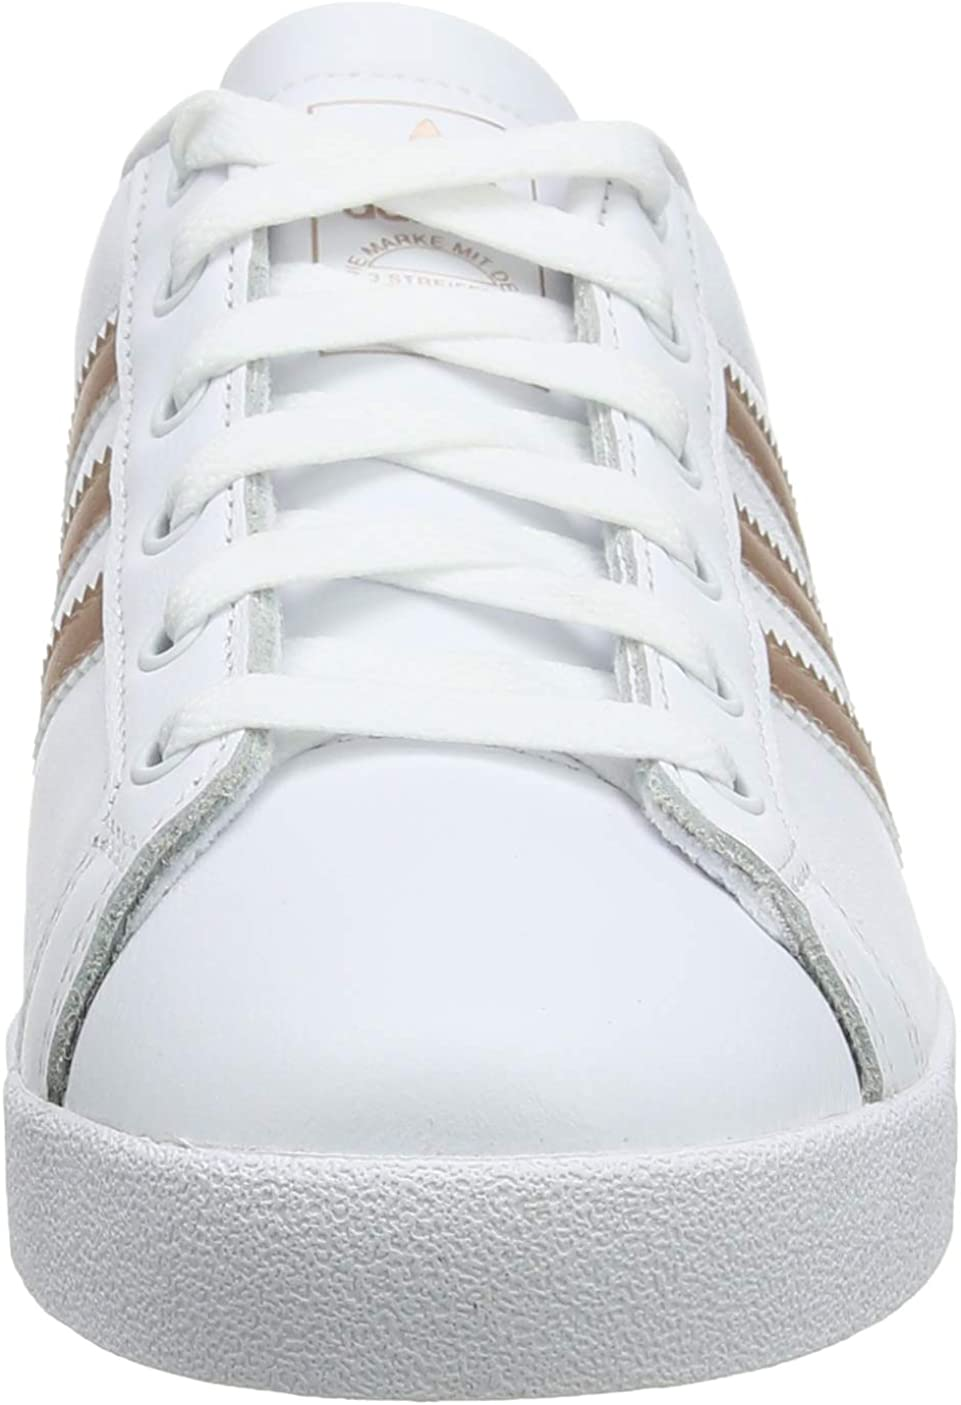 adidas Women's Low-Top Sneakers White (Footwear White/Copper Metallic/Grey 0)